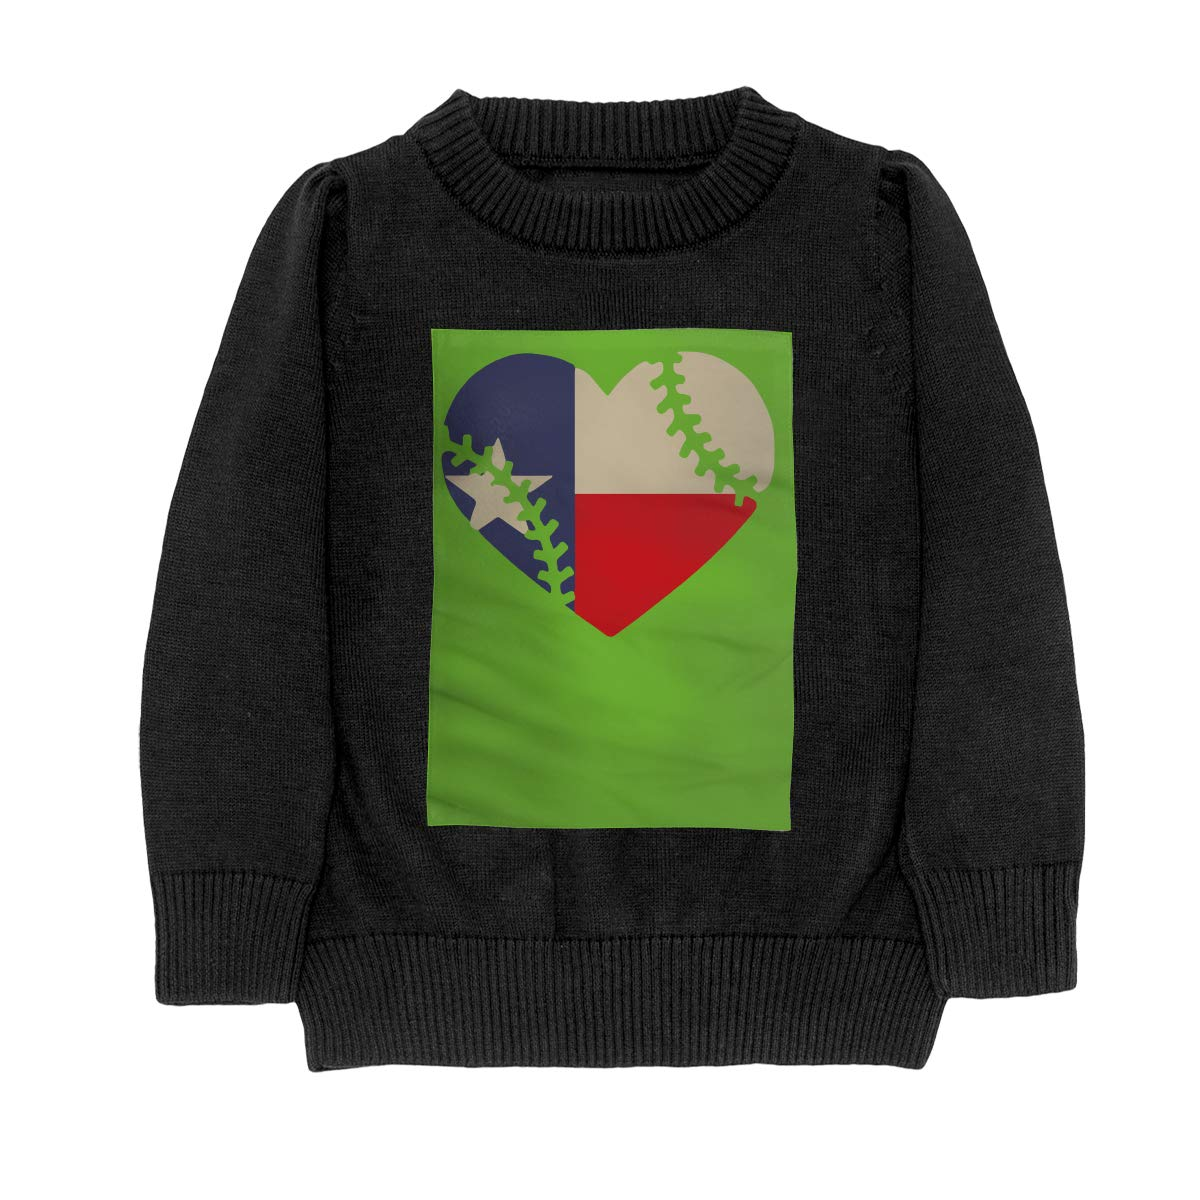 Texas State Flag Baseball Lace Casual Adolescent Boys /& Girls Unisex Sweater Keep Warm